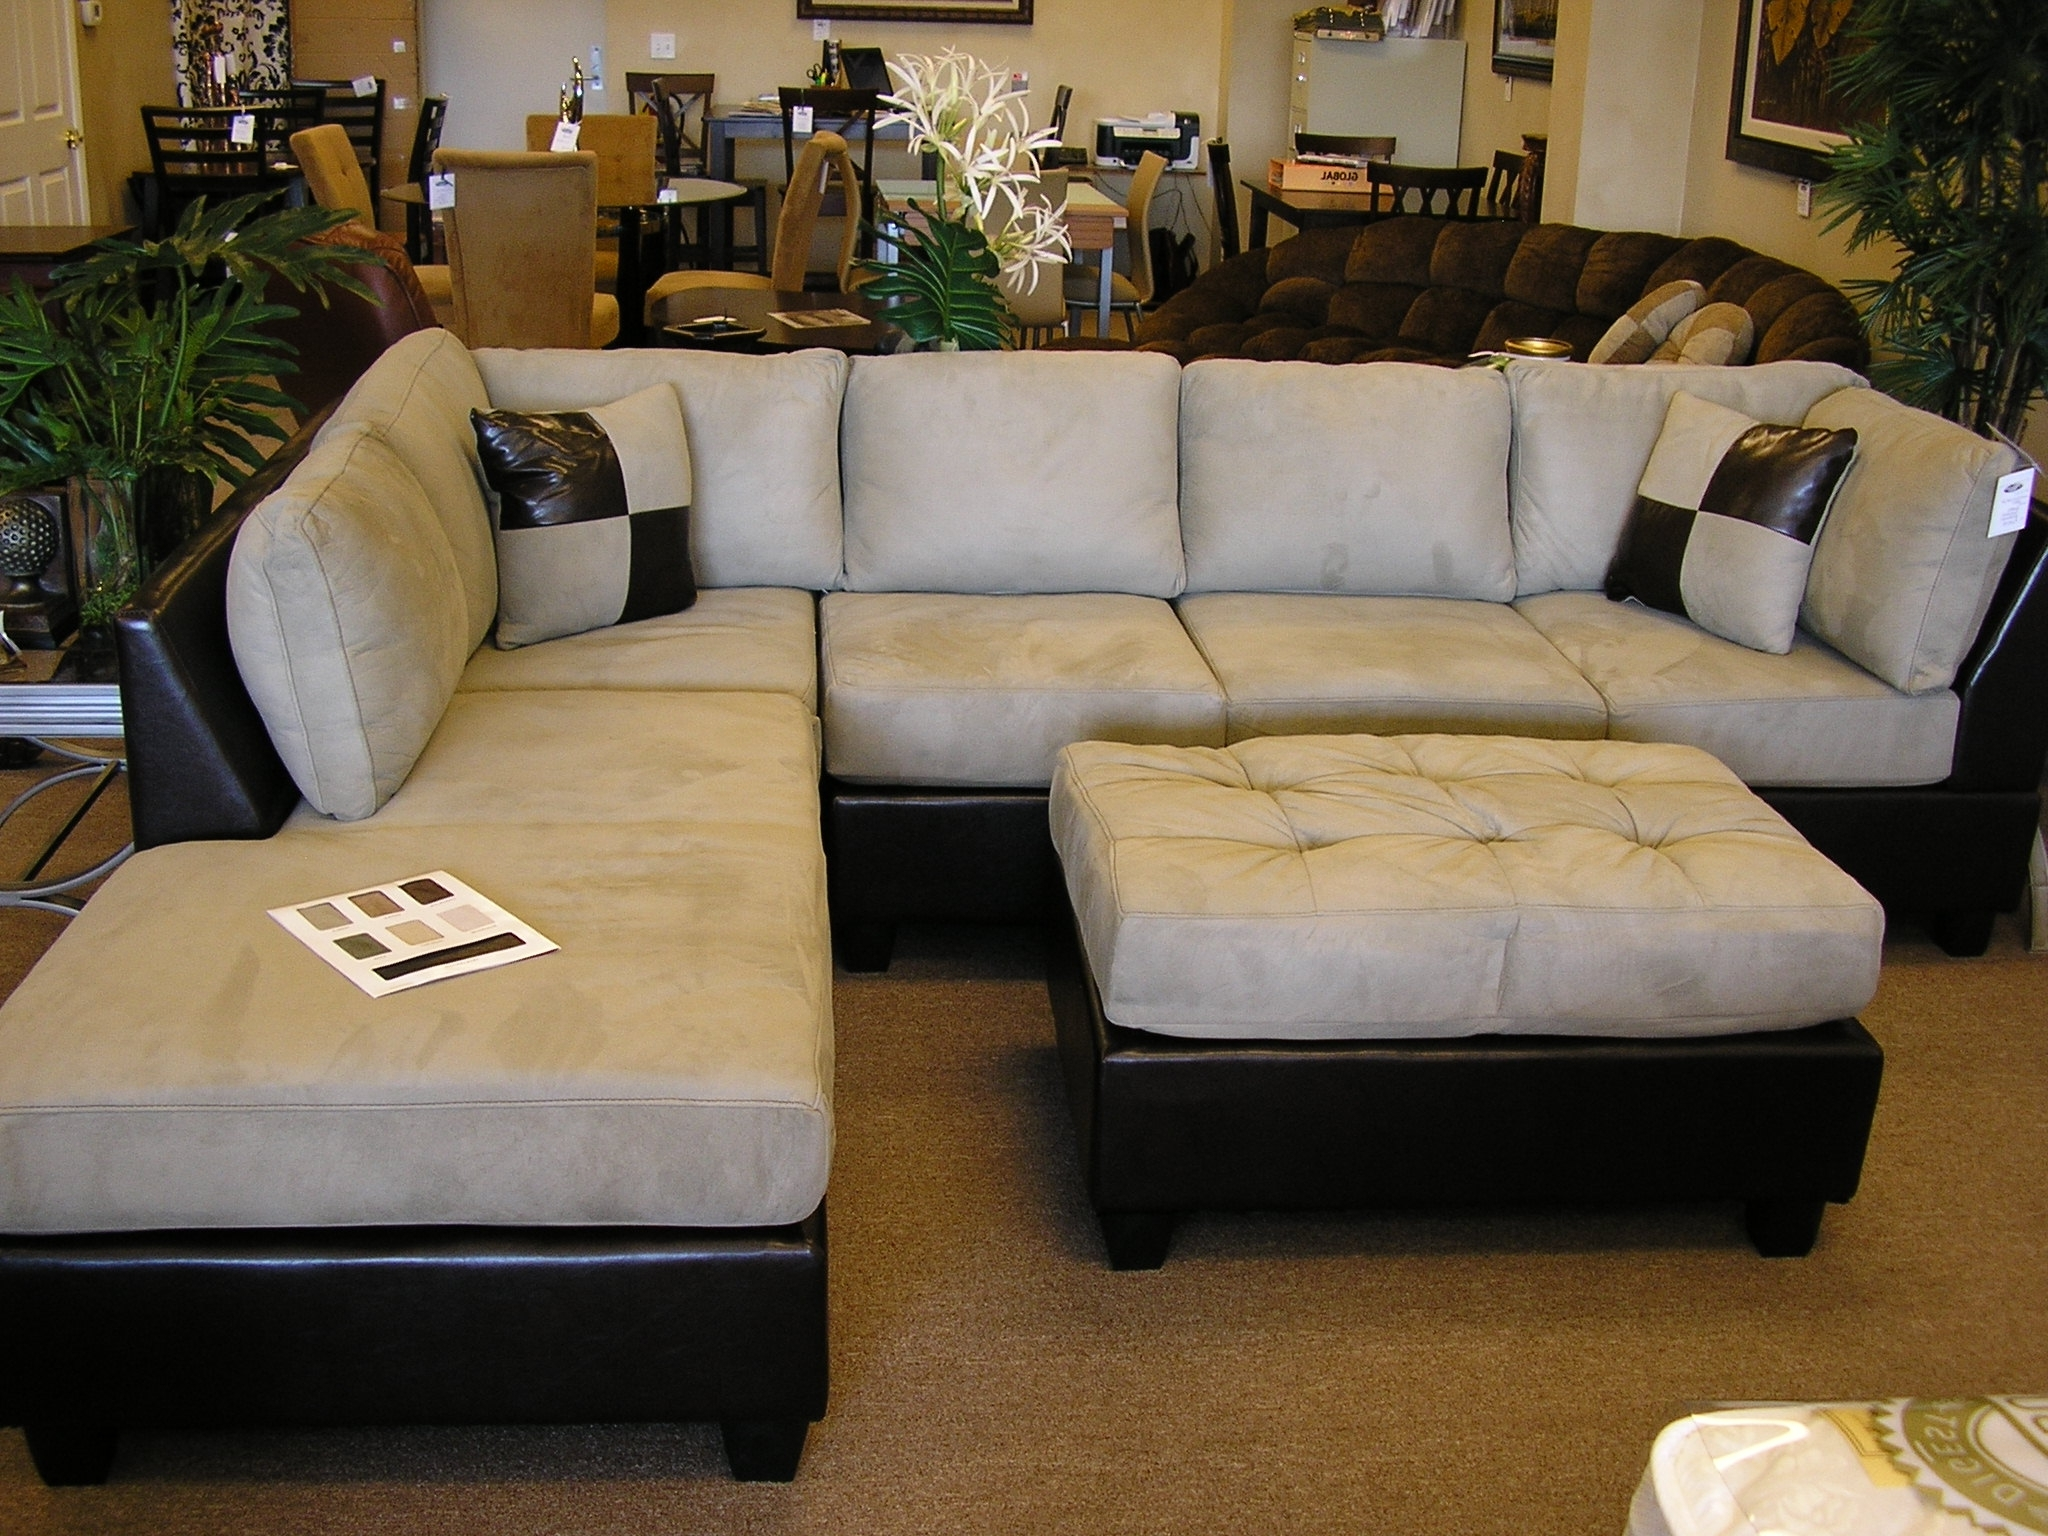 Used Sectional Sofas With Regard To Best And Newest Sectional Sofa: Recommended Cheap Used Sectional Sofas Sectionals (Gallery 1 of 20)